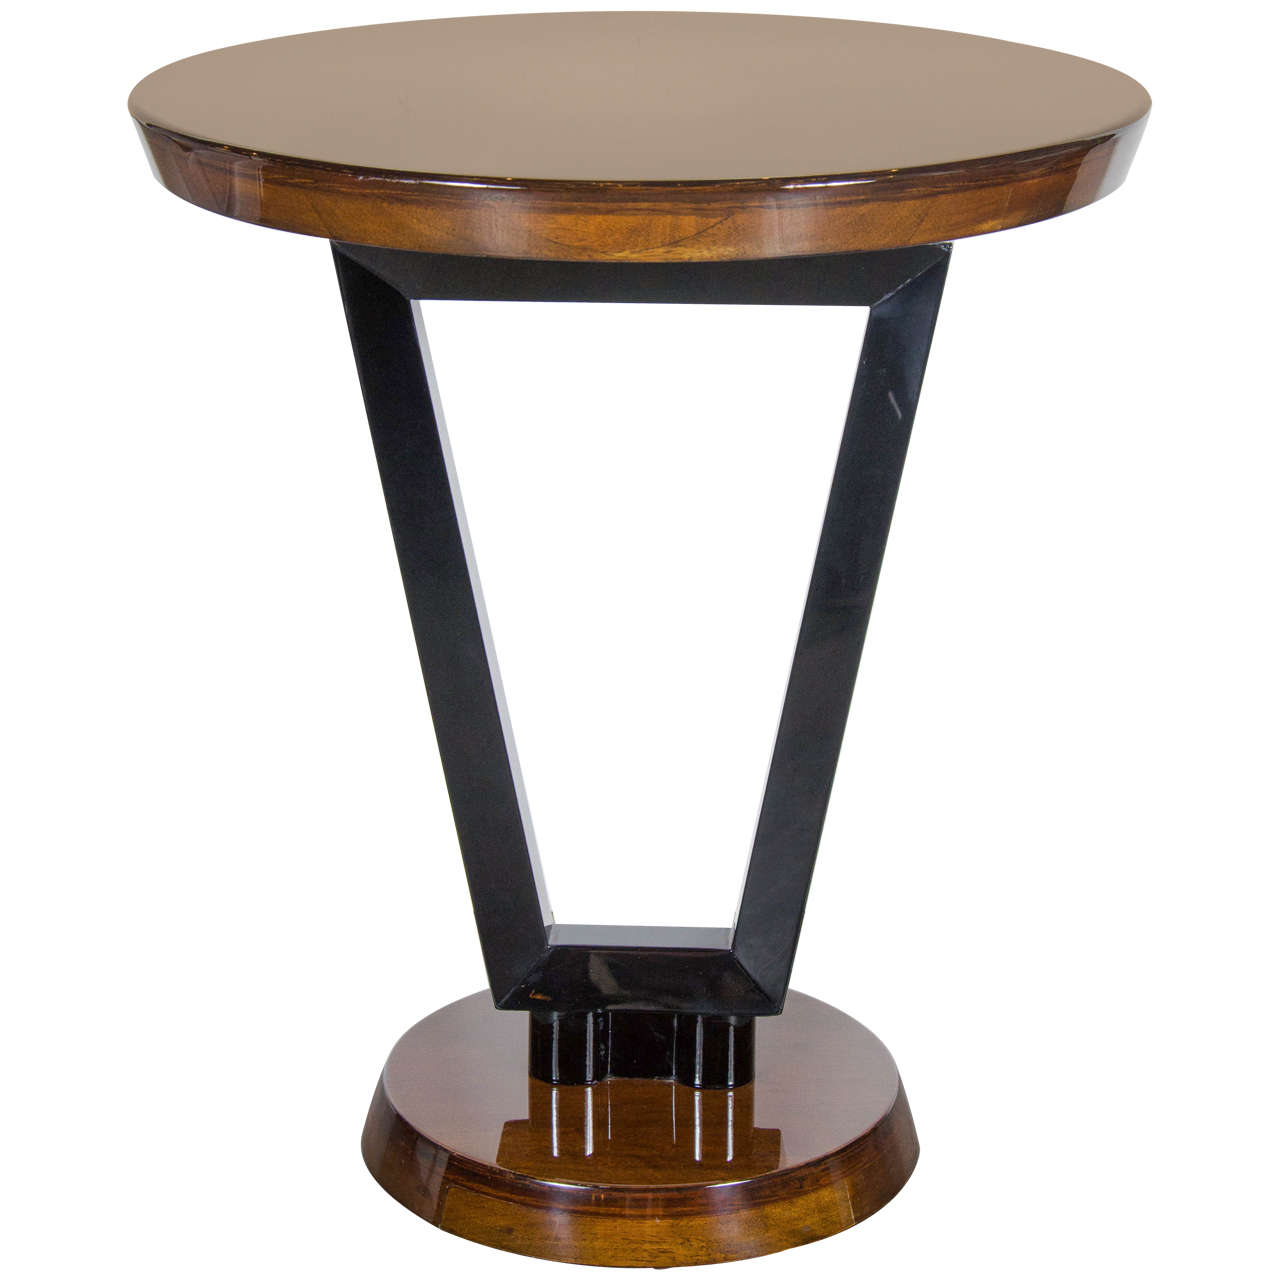 Art deco coffee table santaconapp for Table de nuit art deco